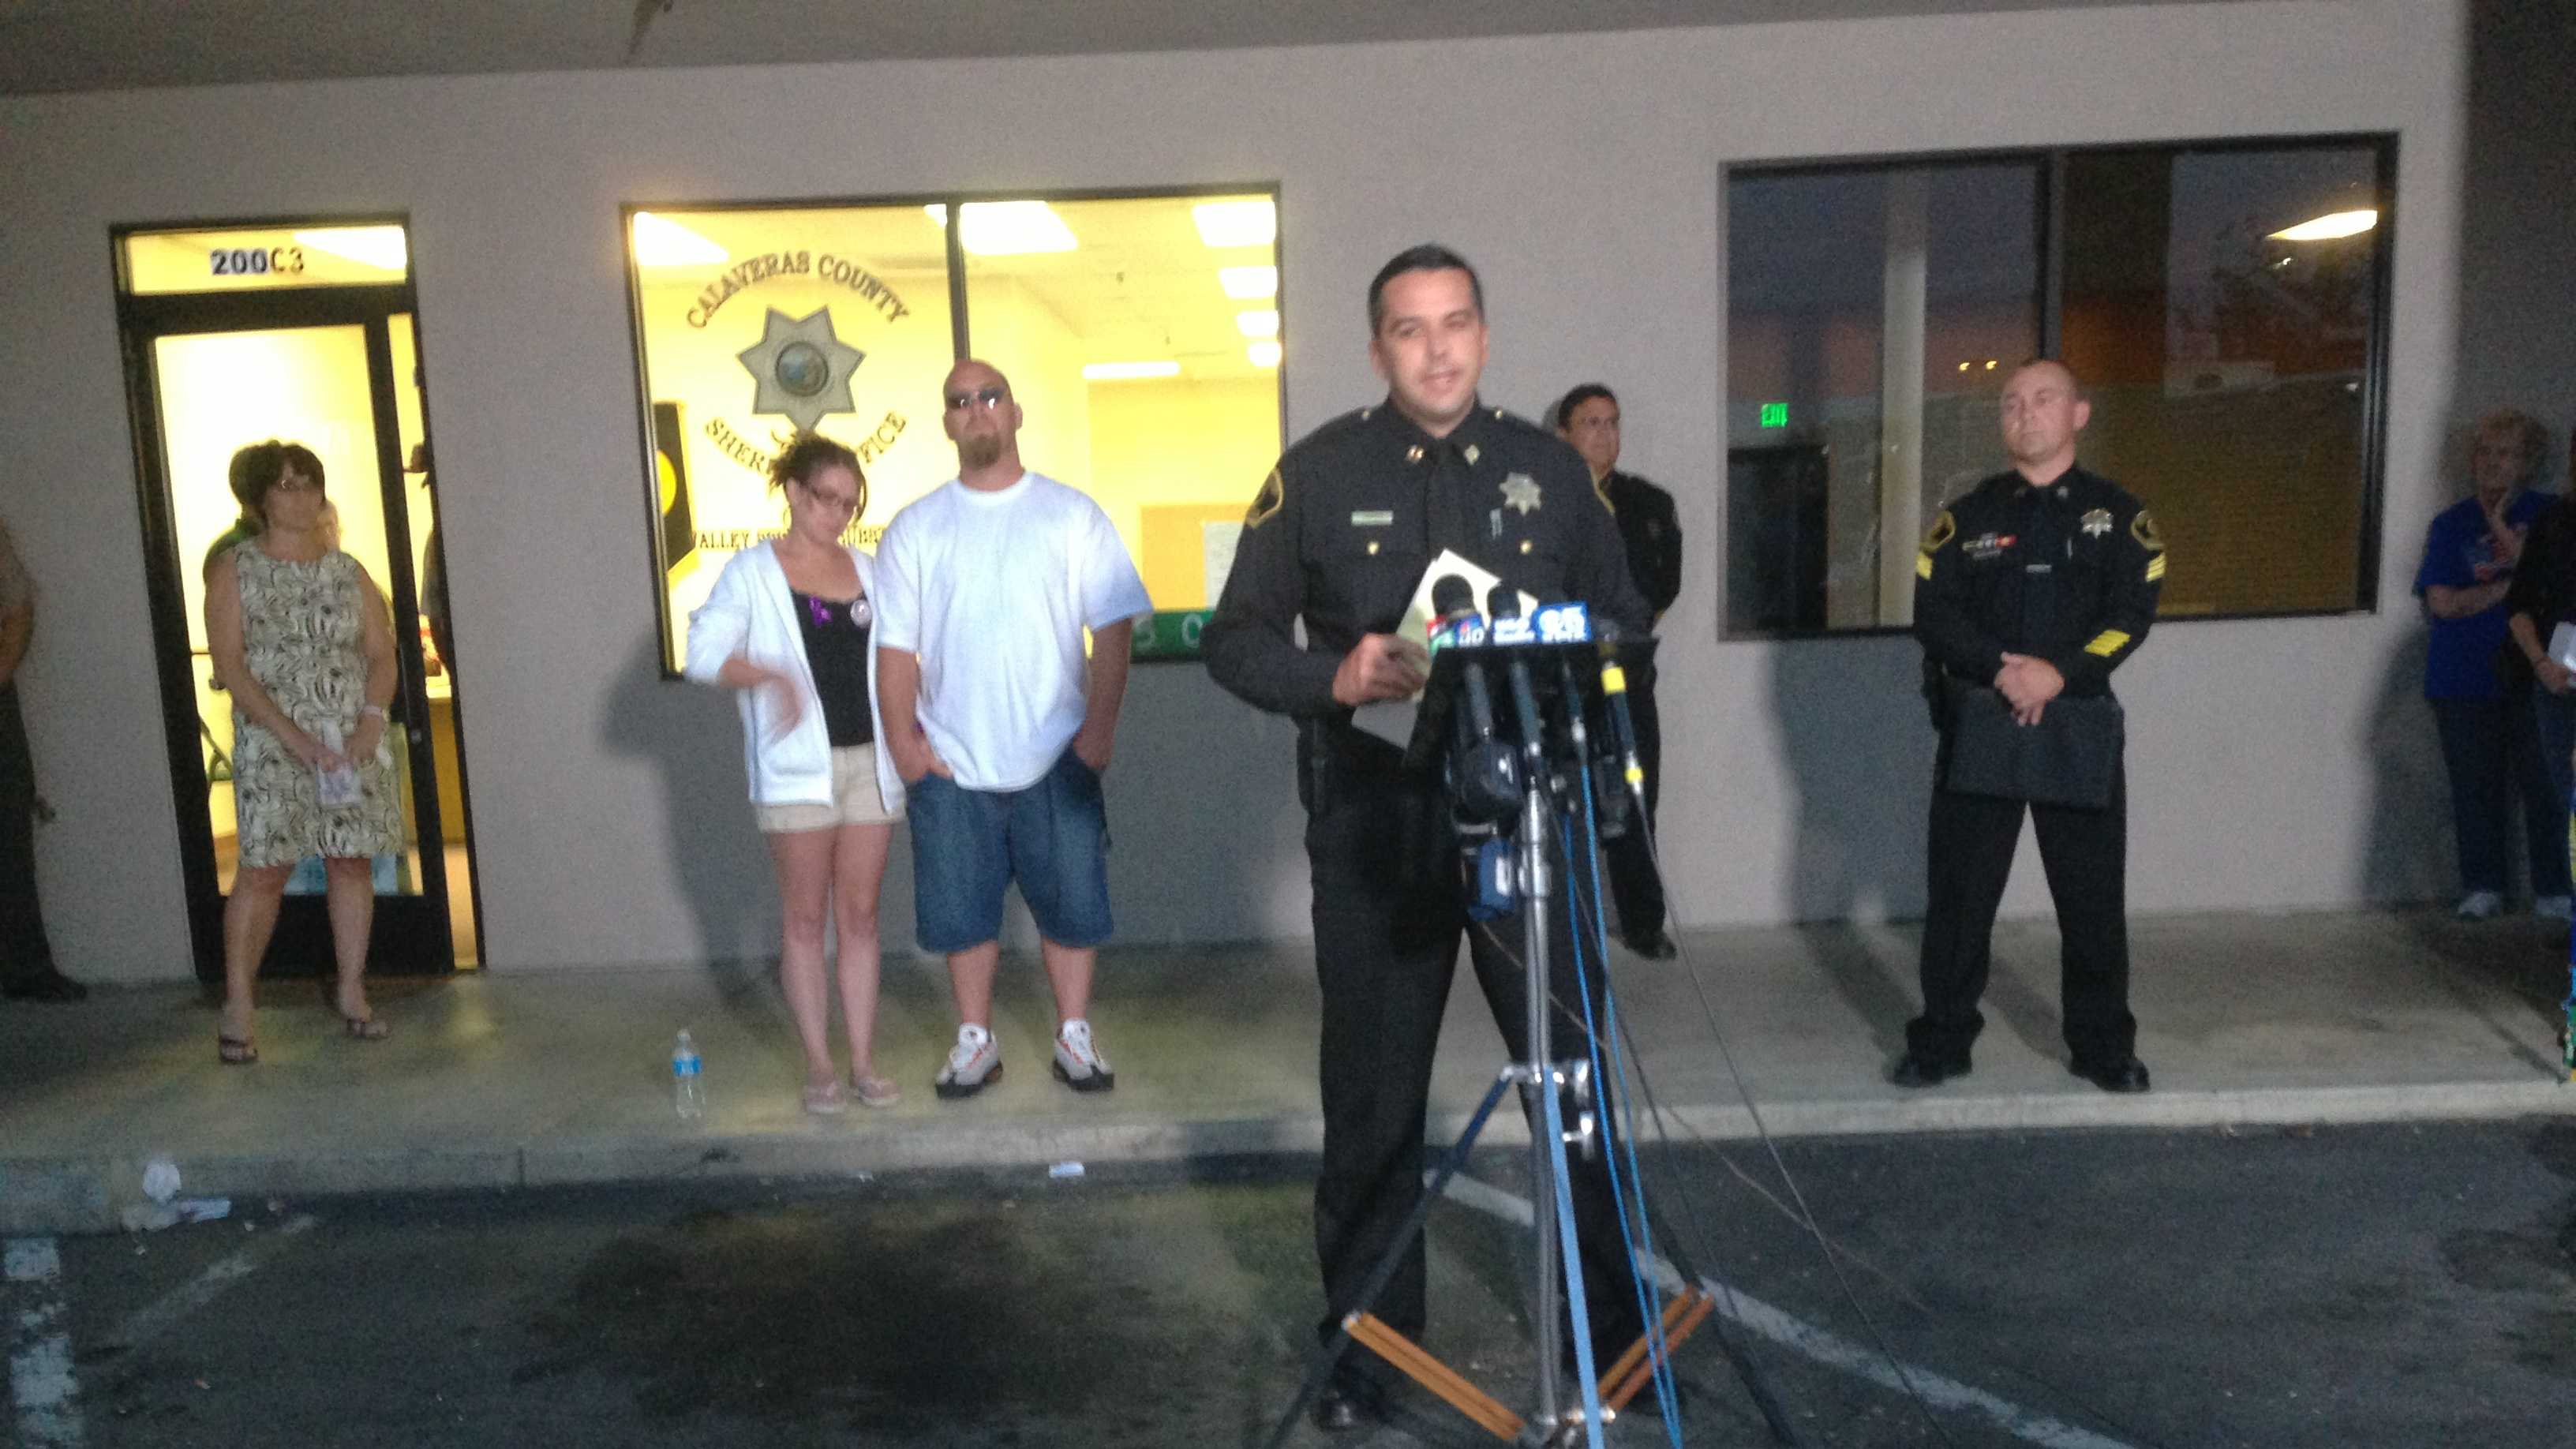 Calaveras County officials held a news conference on Monday night (April 29, 2013).